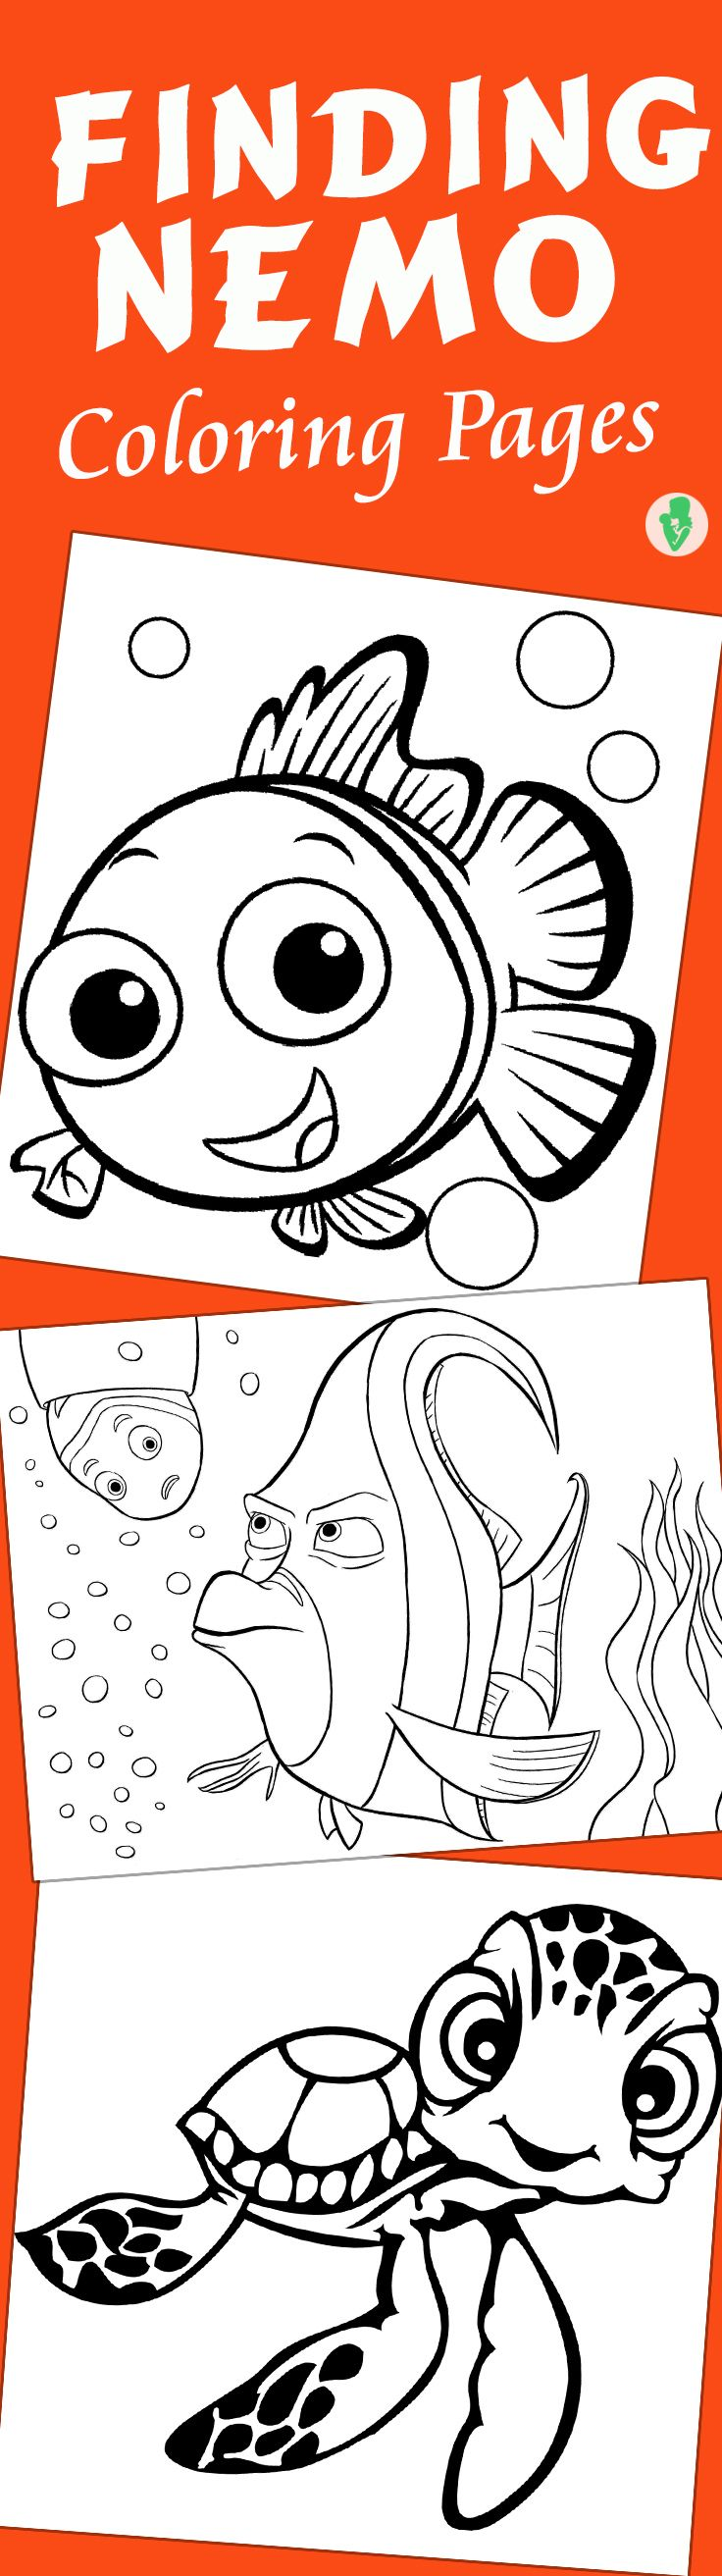 10 Cute Finding Nemo Coloring Pages For Your Little Ones